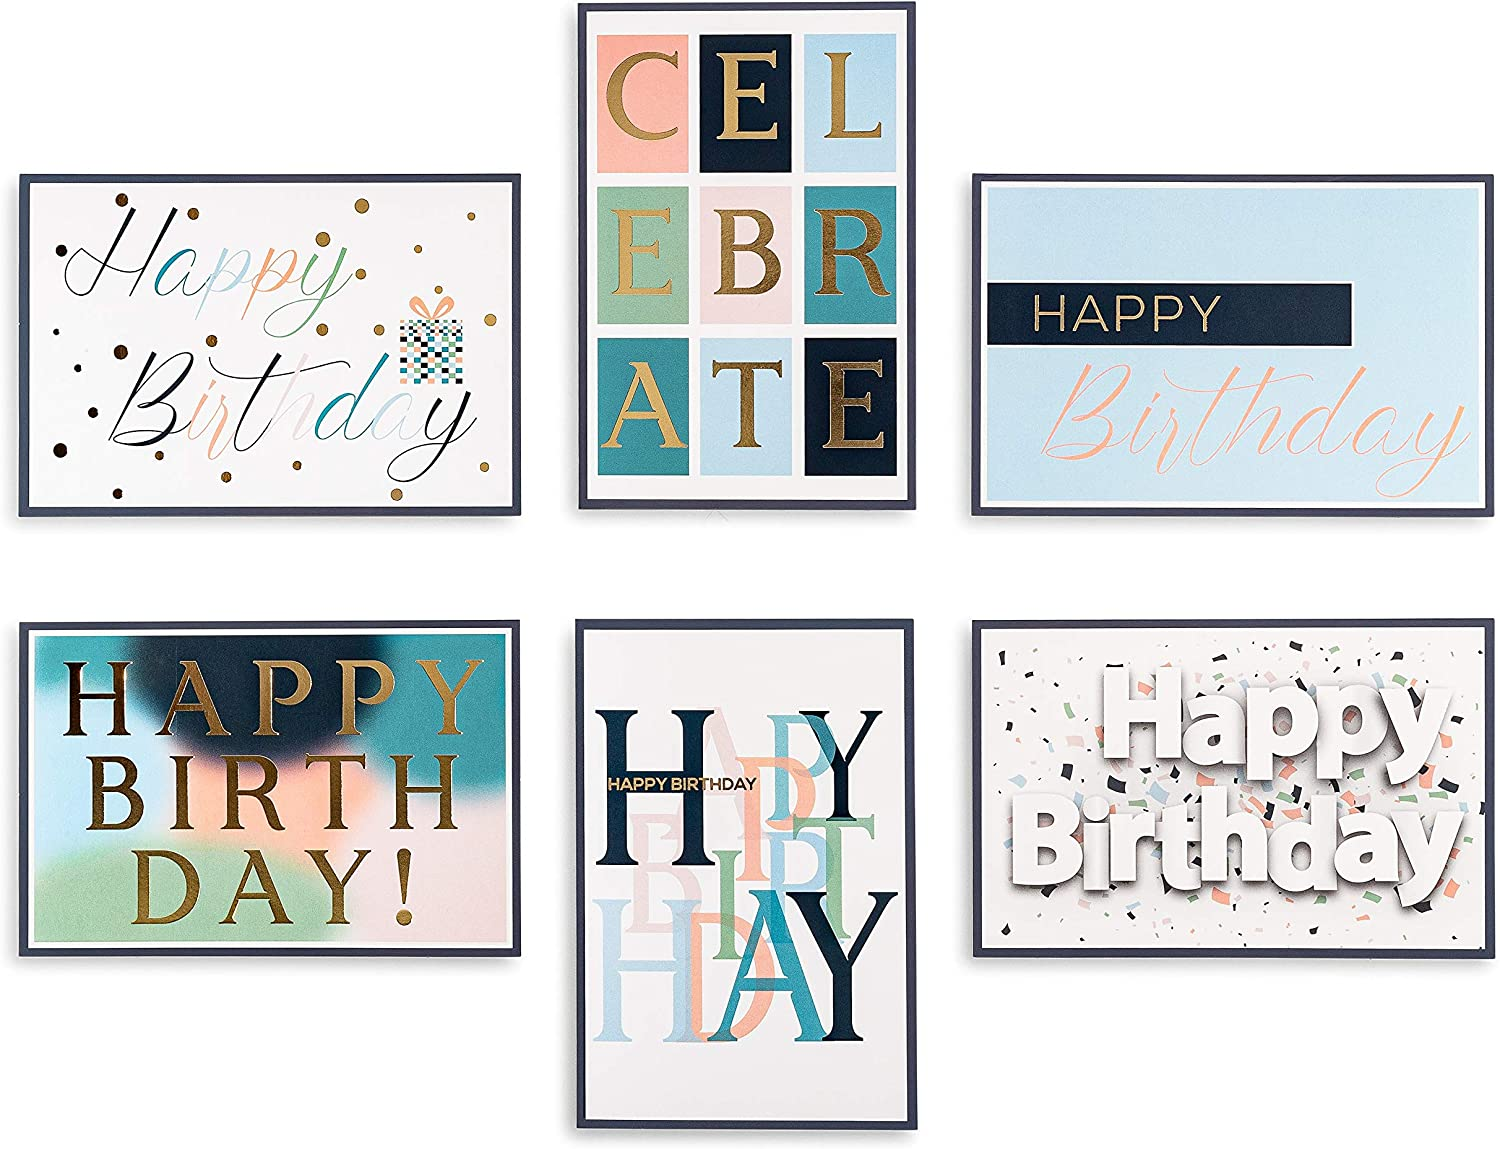 Happy Manufacturer New Free Shipping regenerated product Birthday Cards Box - Assorted 48 with Envel